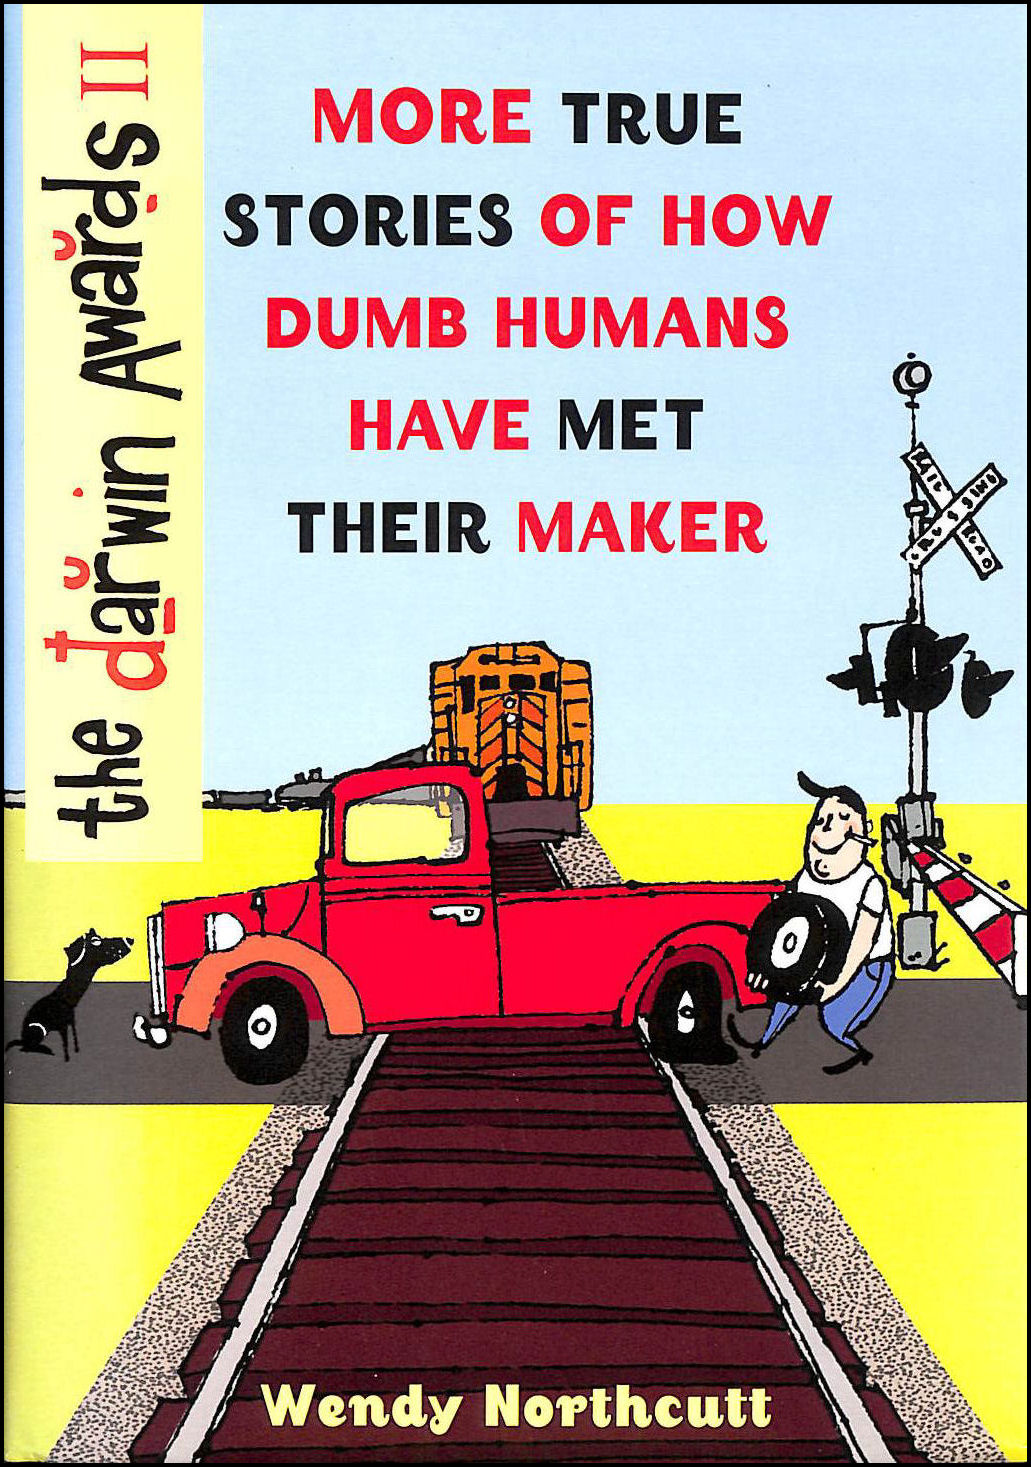 Image for The Darwin Awards II: More True Stories of How Dumb Humans Have Met Their Maker